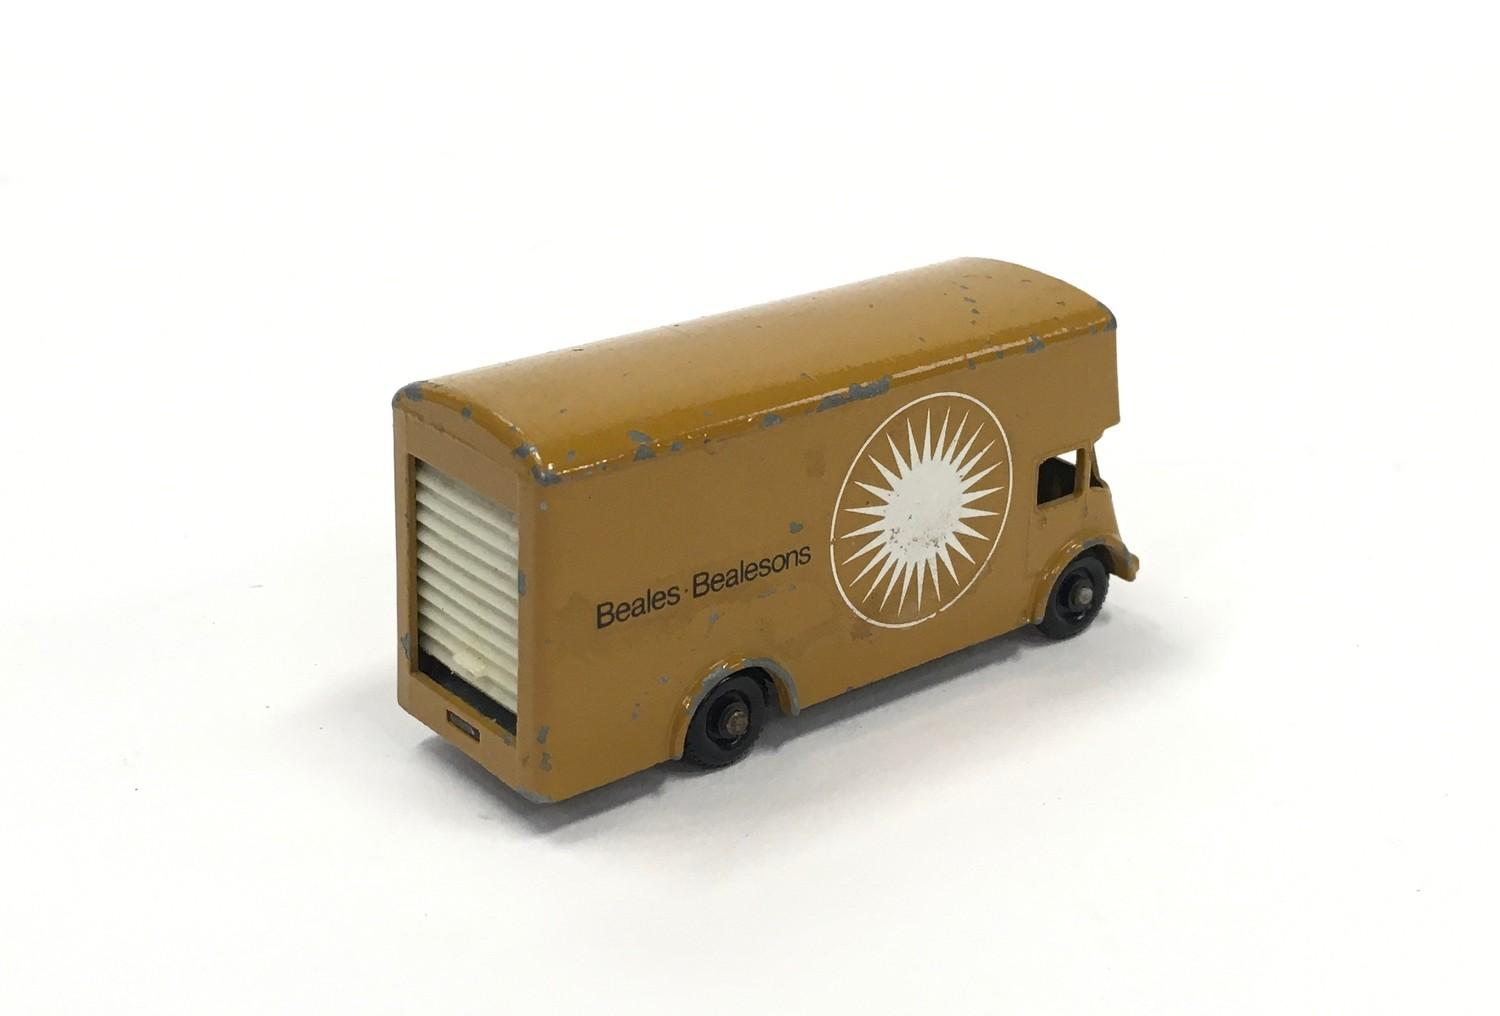 "Matchbox Regular Wheels No.46b Guy Removal Van ""Beales Bealesons"" Promotional Issue - tan type B - Image 2 of 2"